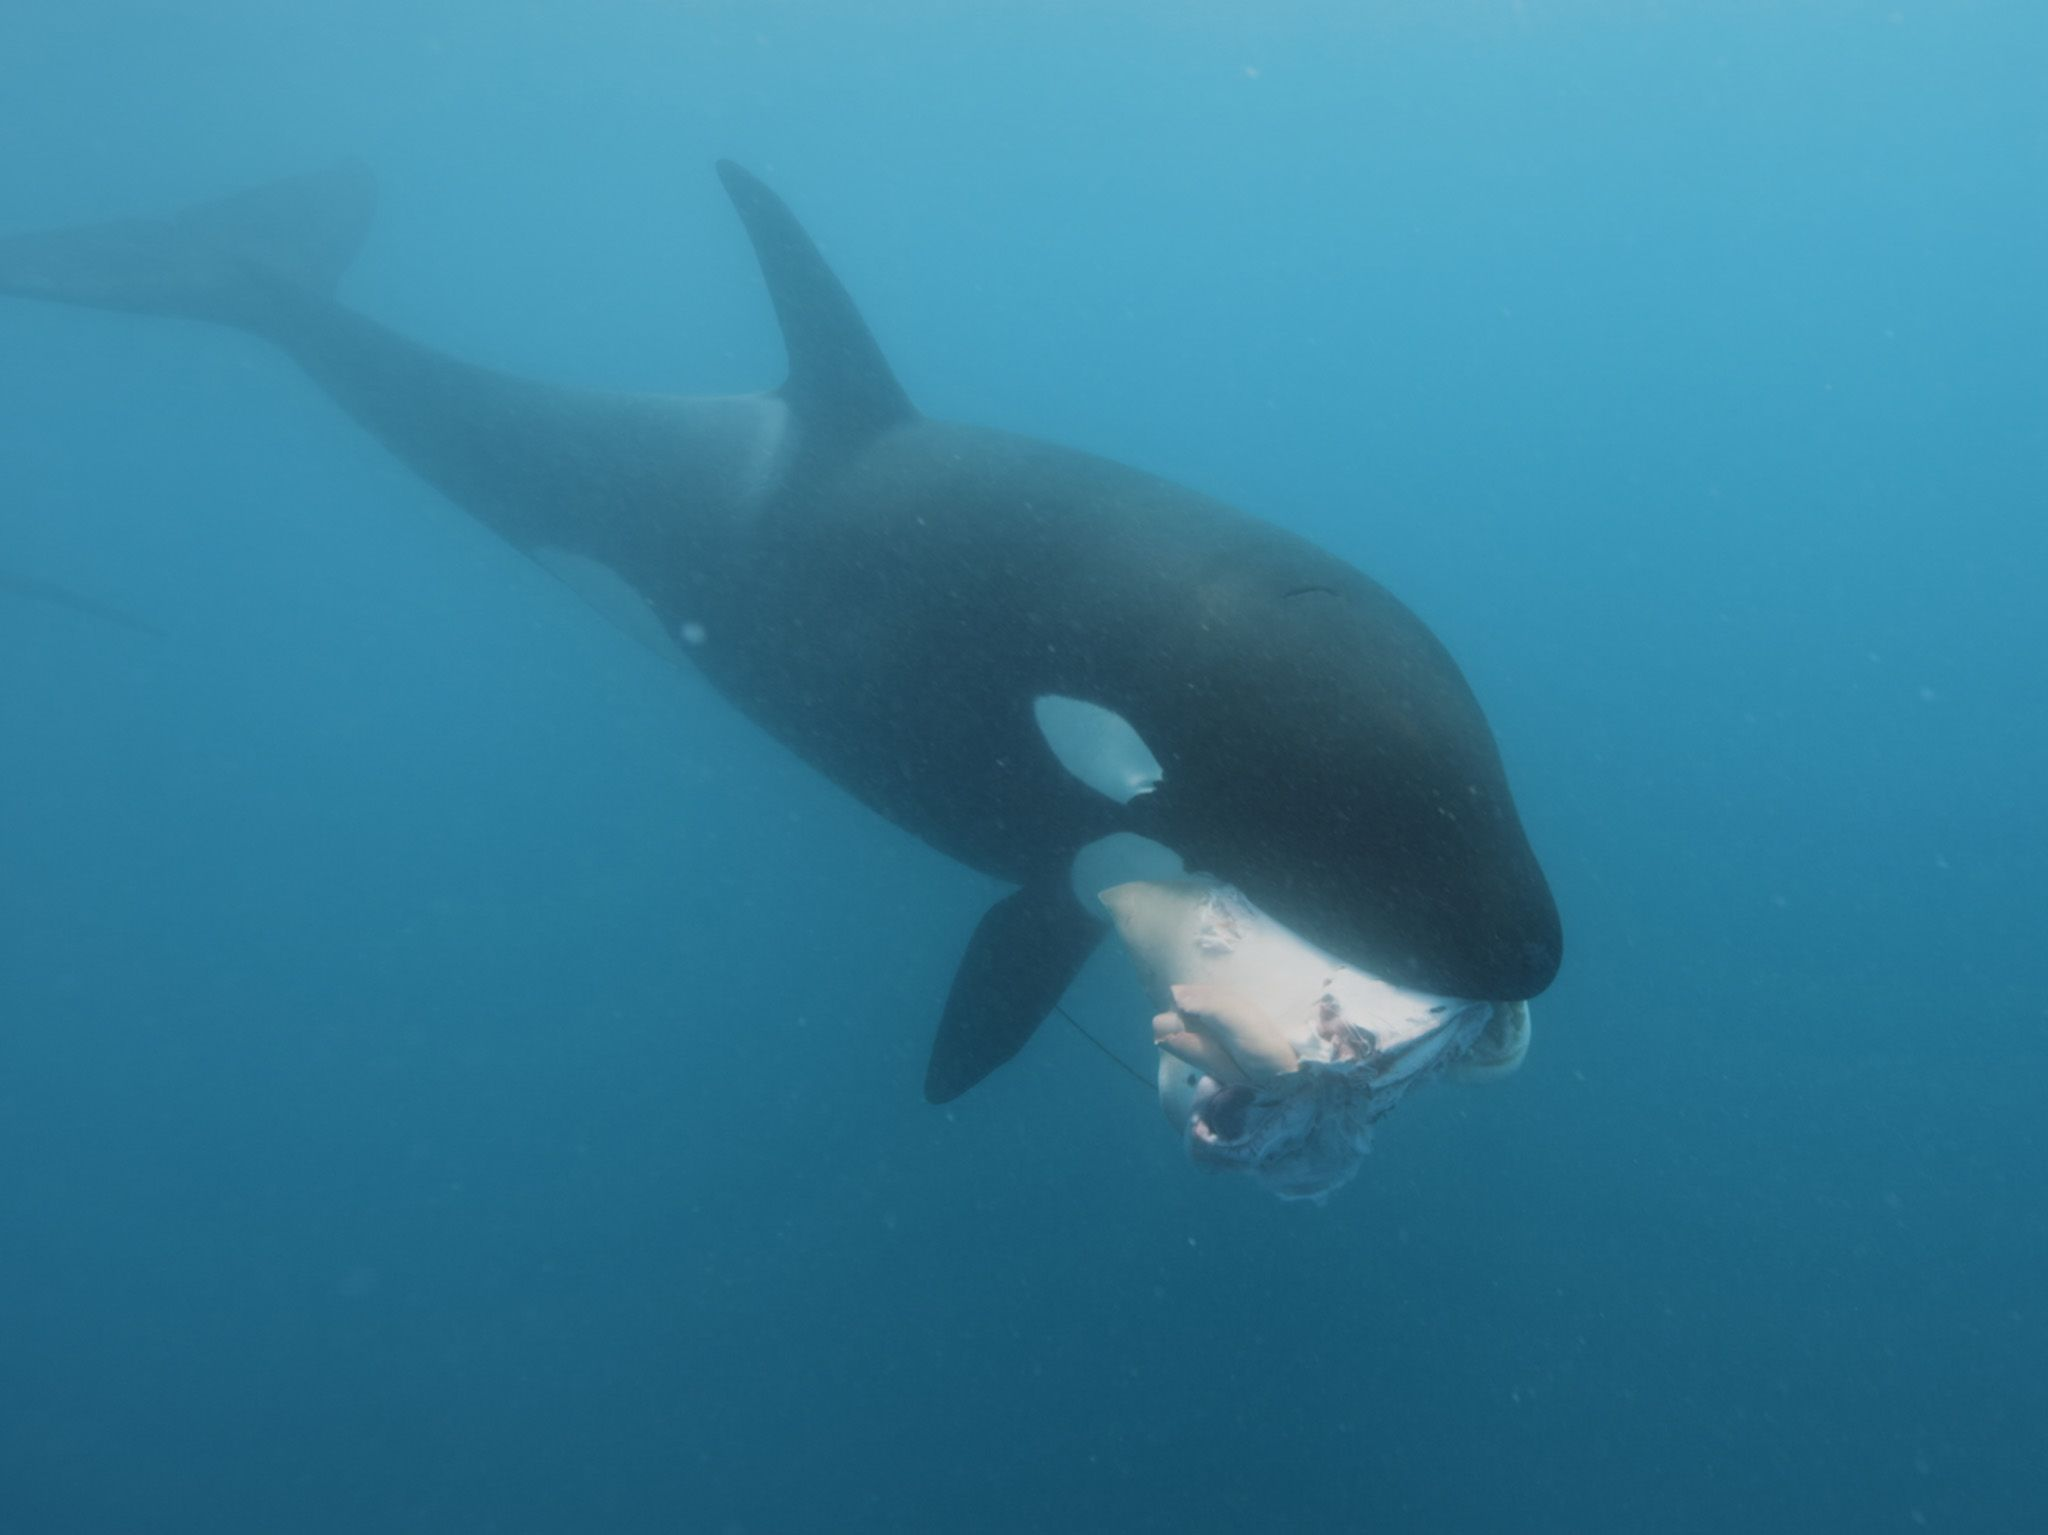 An orca swimming with a stingray in its mouth. This is part of Killer Whale vs Shark. [Photo of the day - July 2021]